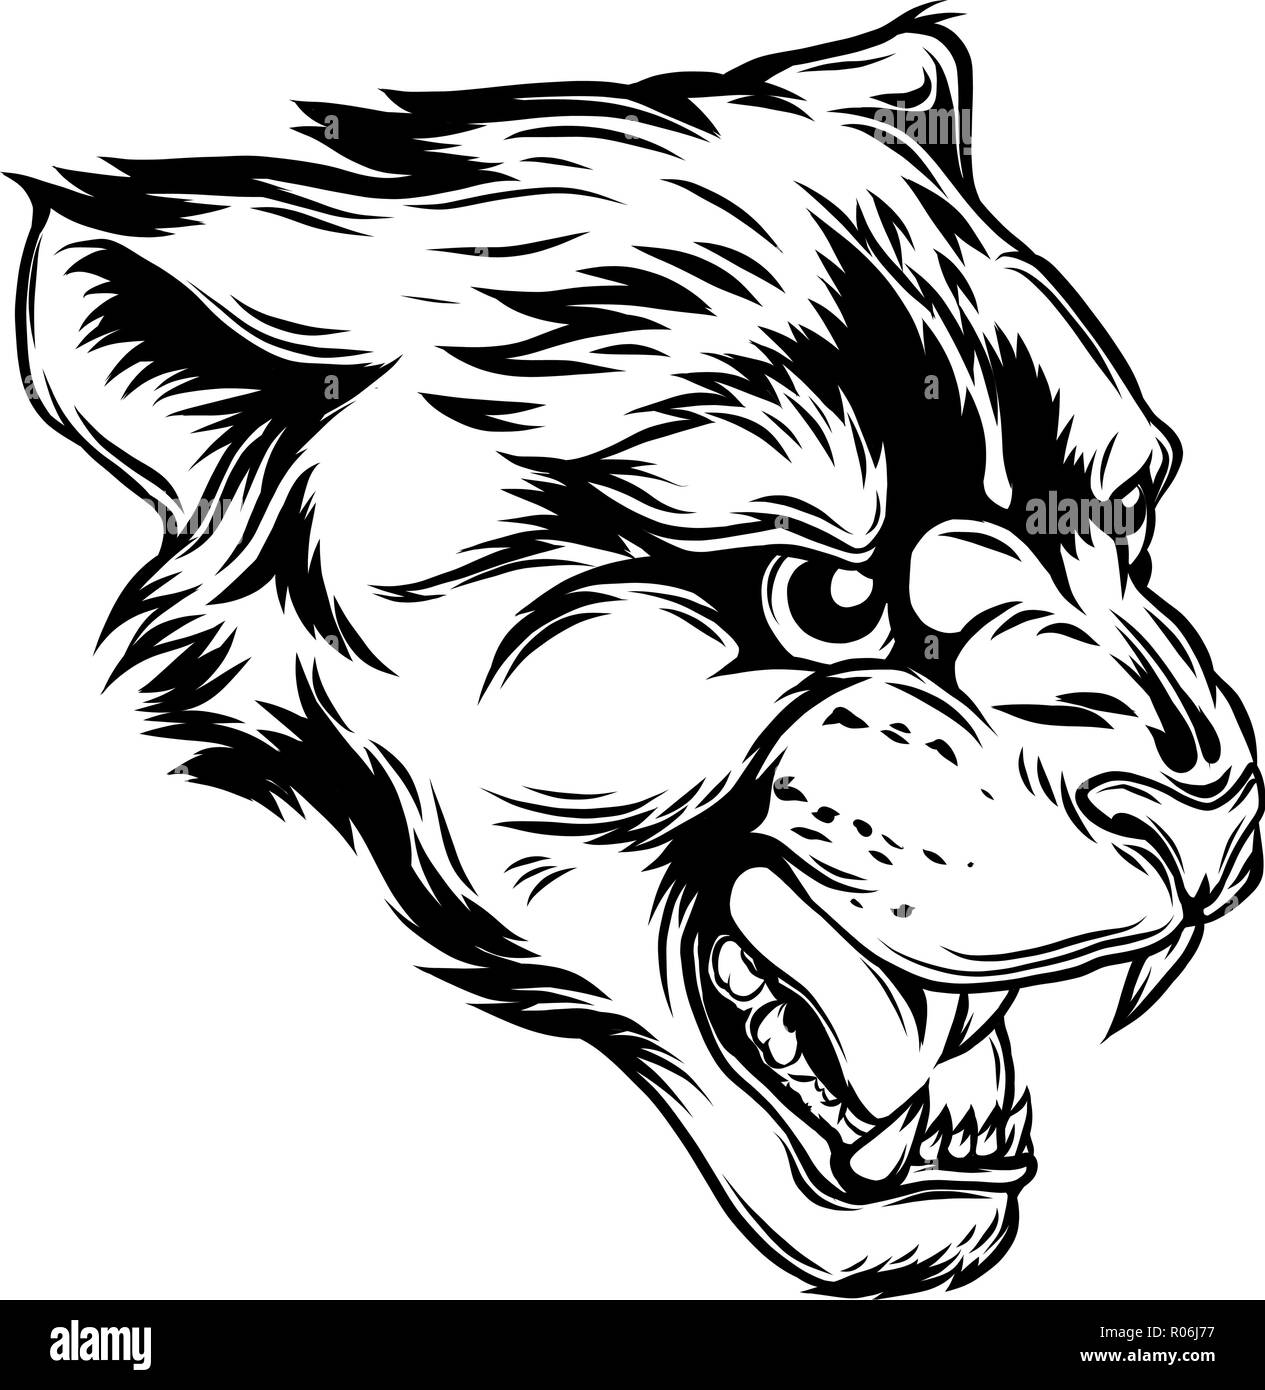 be7e7ba6433 Cougar Panther Mascot Head Vector Graphic illustration Stock Vector ...